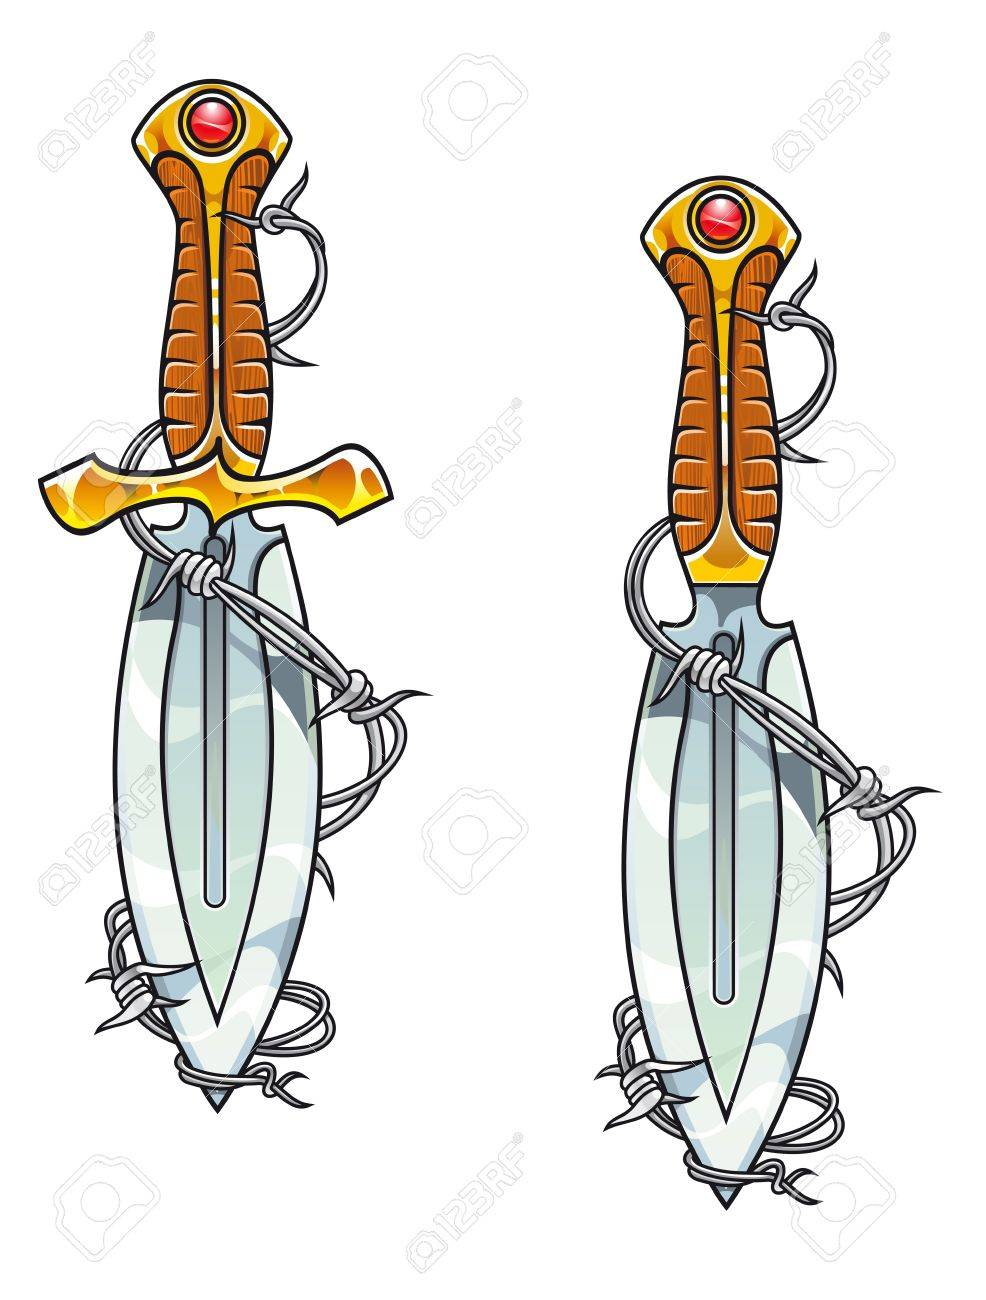 Vintage sharp dagger with barbed wire for tattoo design Stock Vector - 11275034